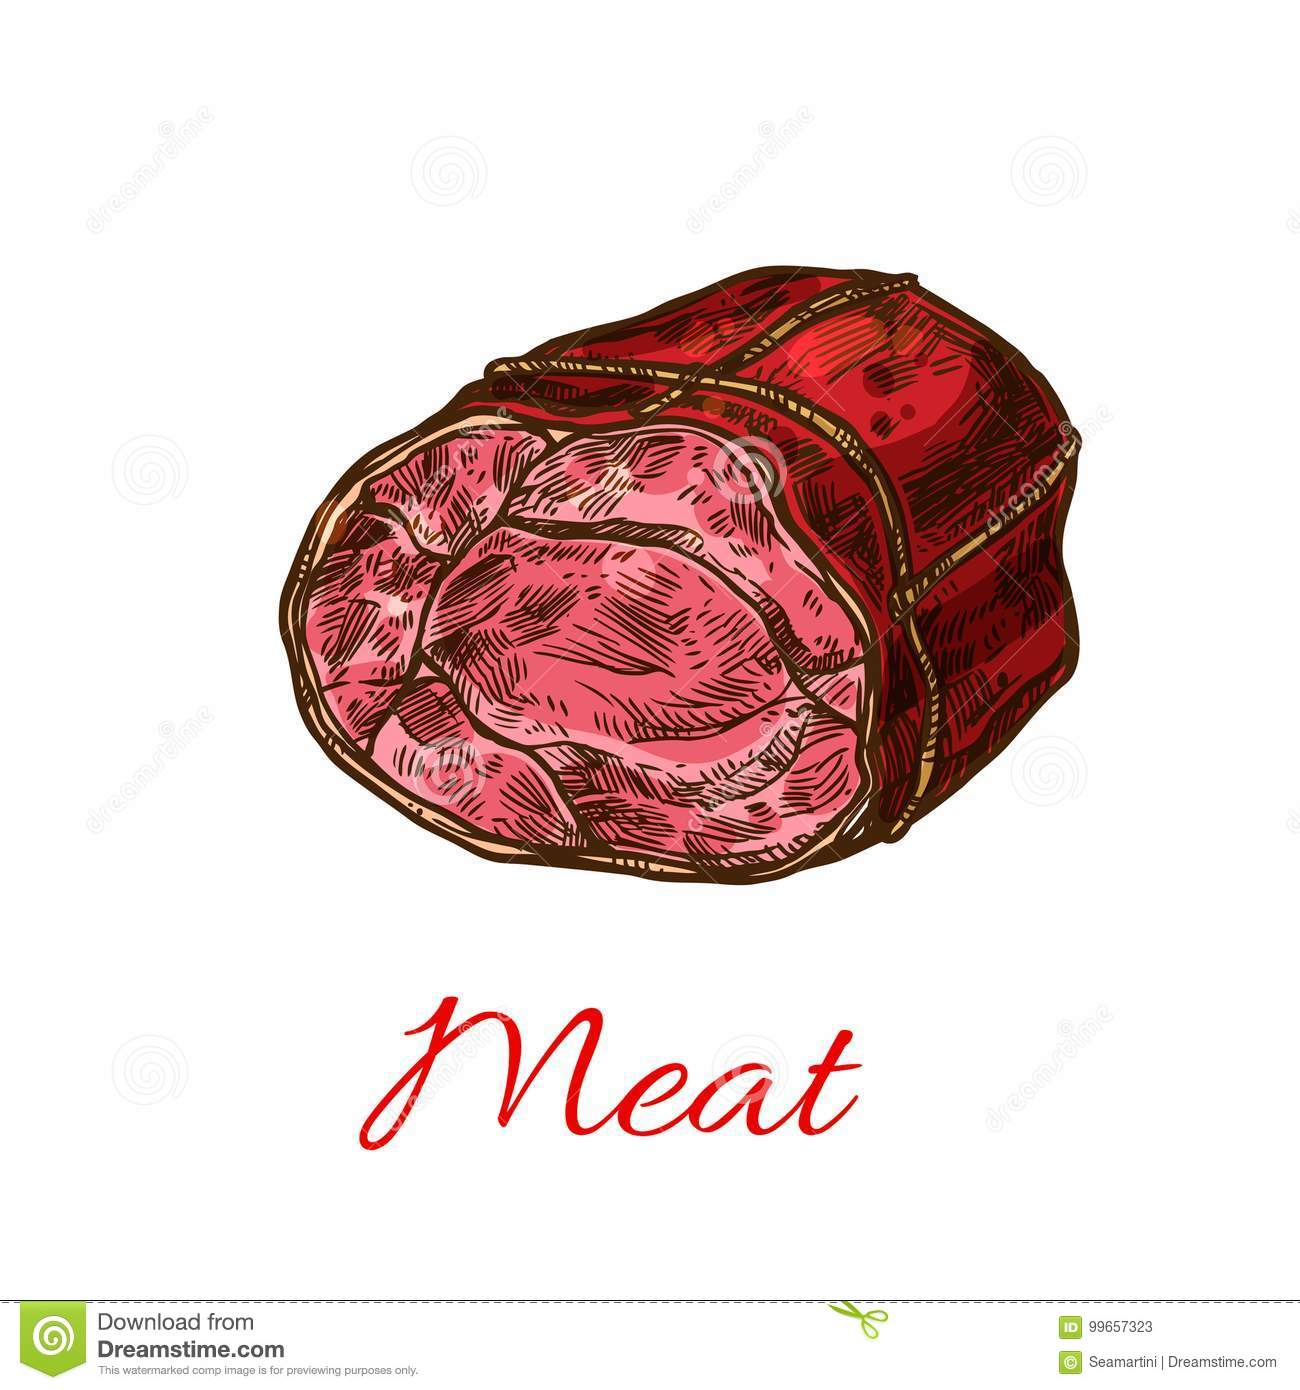 beef meat roll sketch for food design stock vector - illustration of